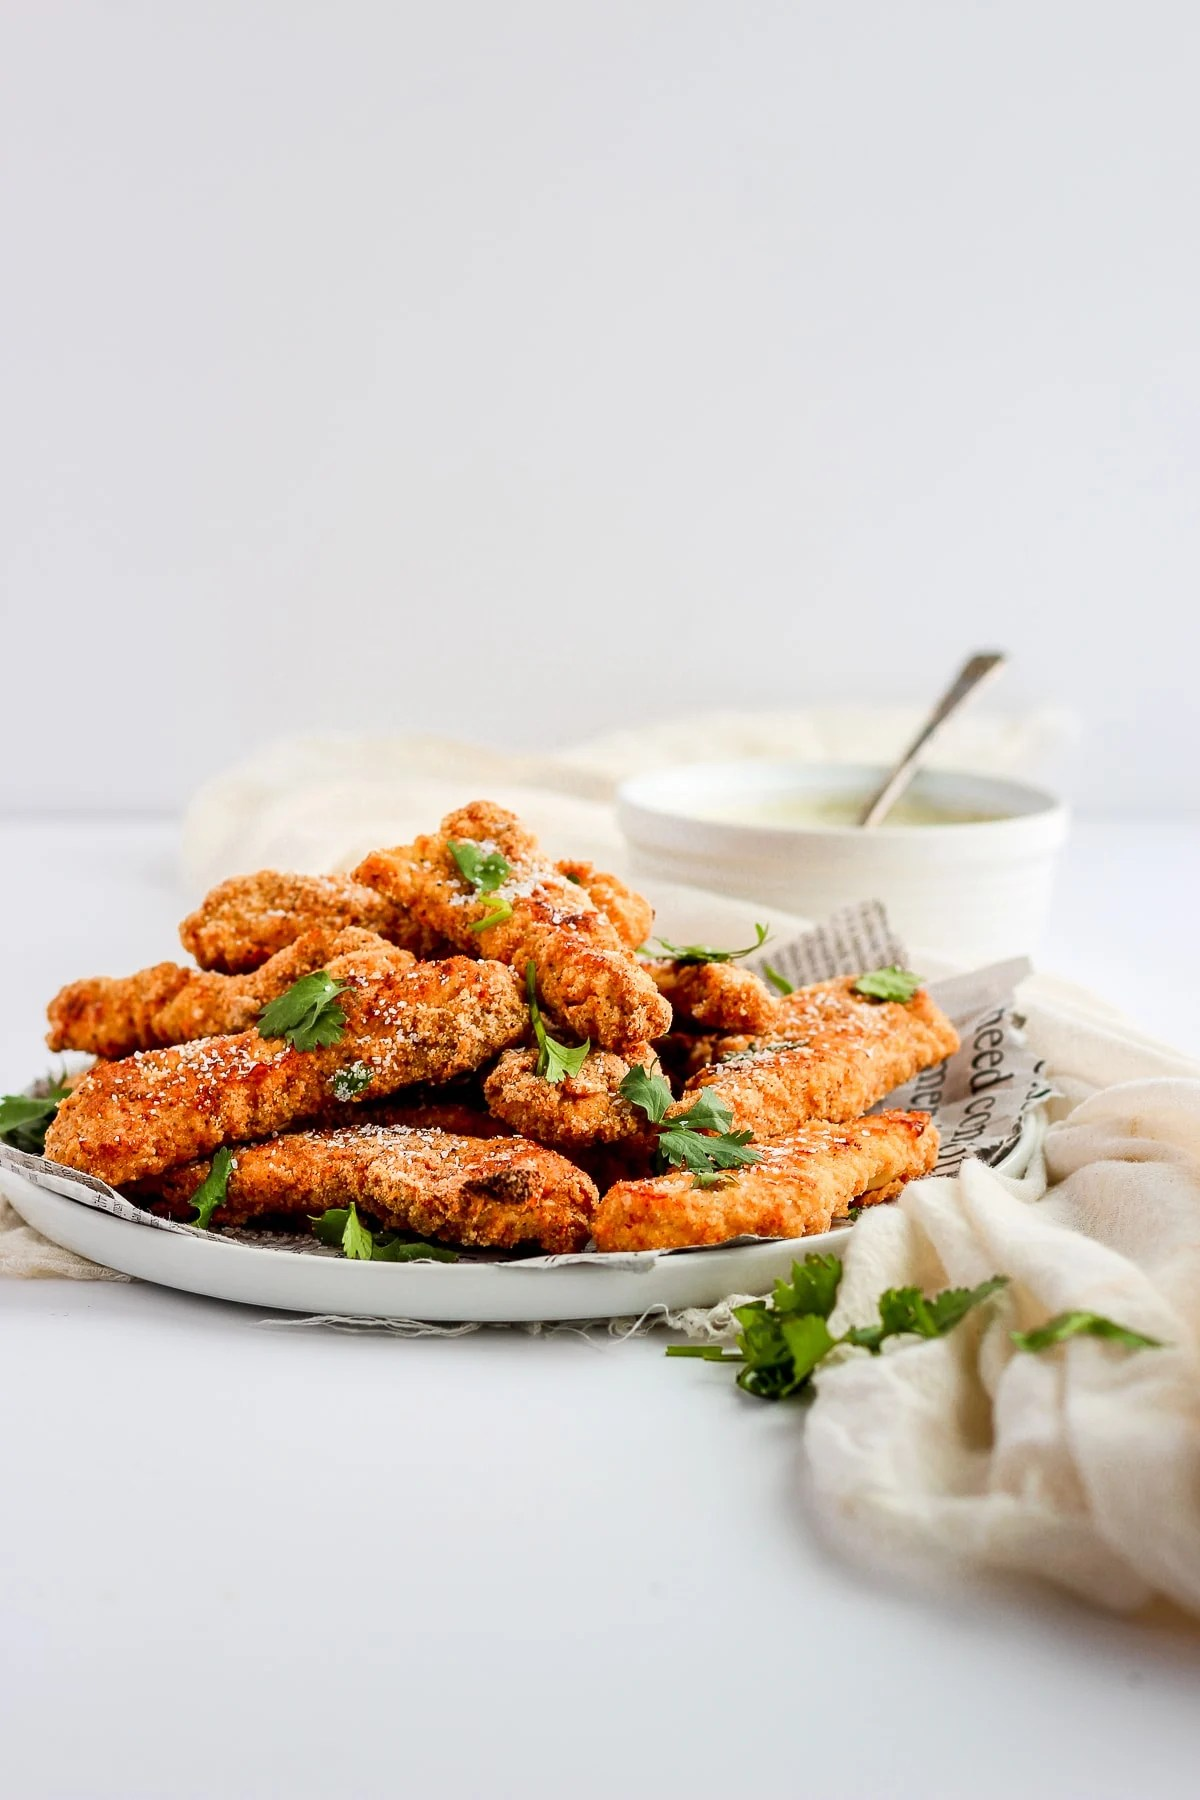 Easy Whole30 Chicken Tenders - a quick and easy dinner that is always kid-approved! #whole30 #paleo